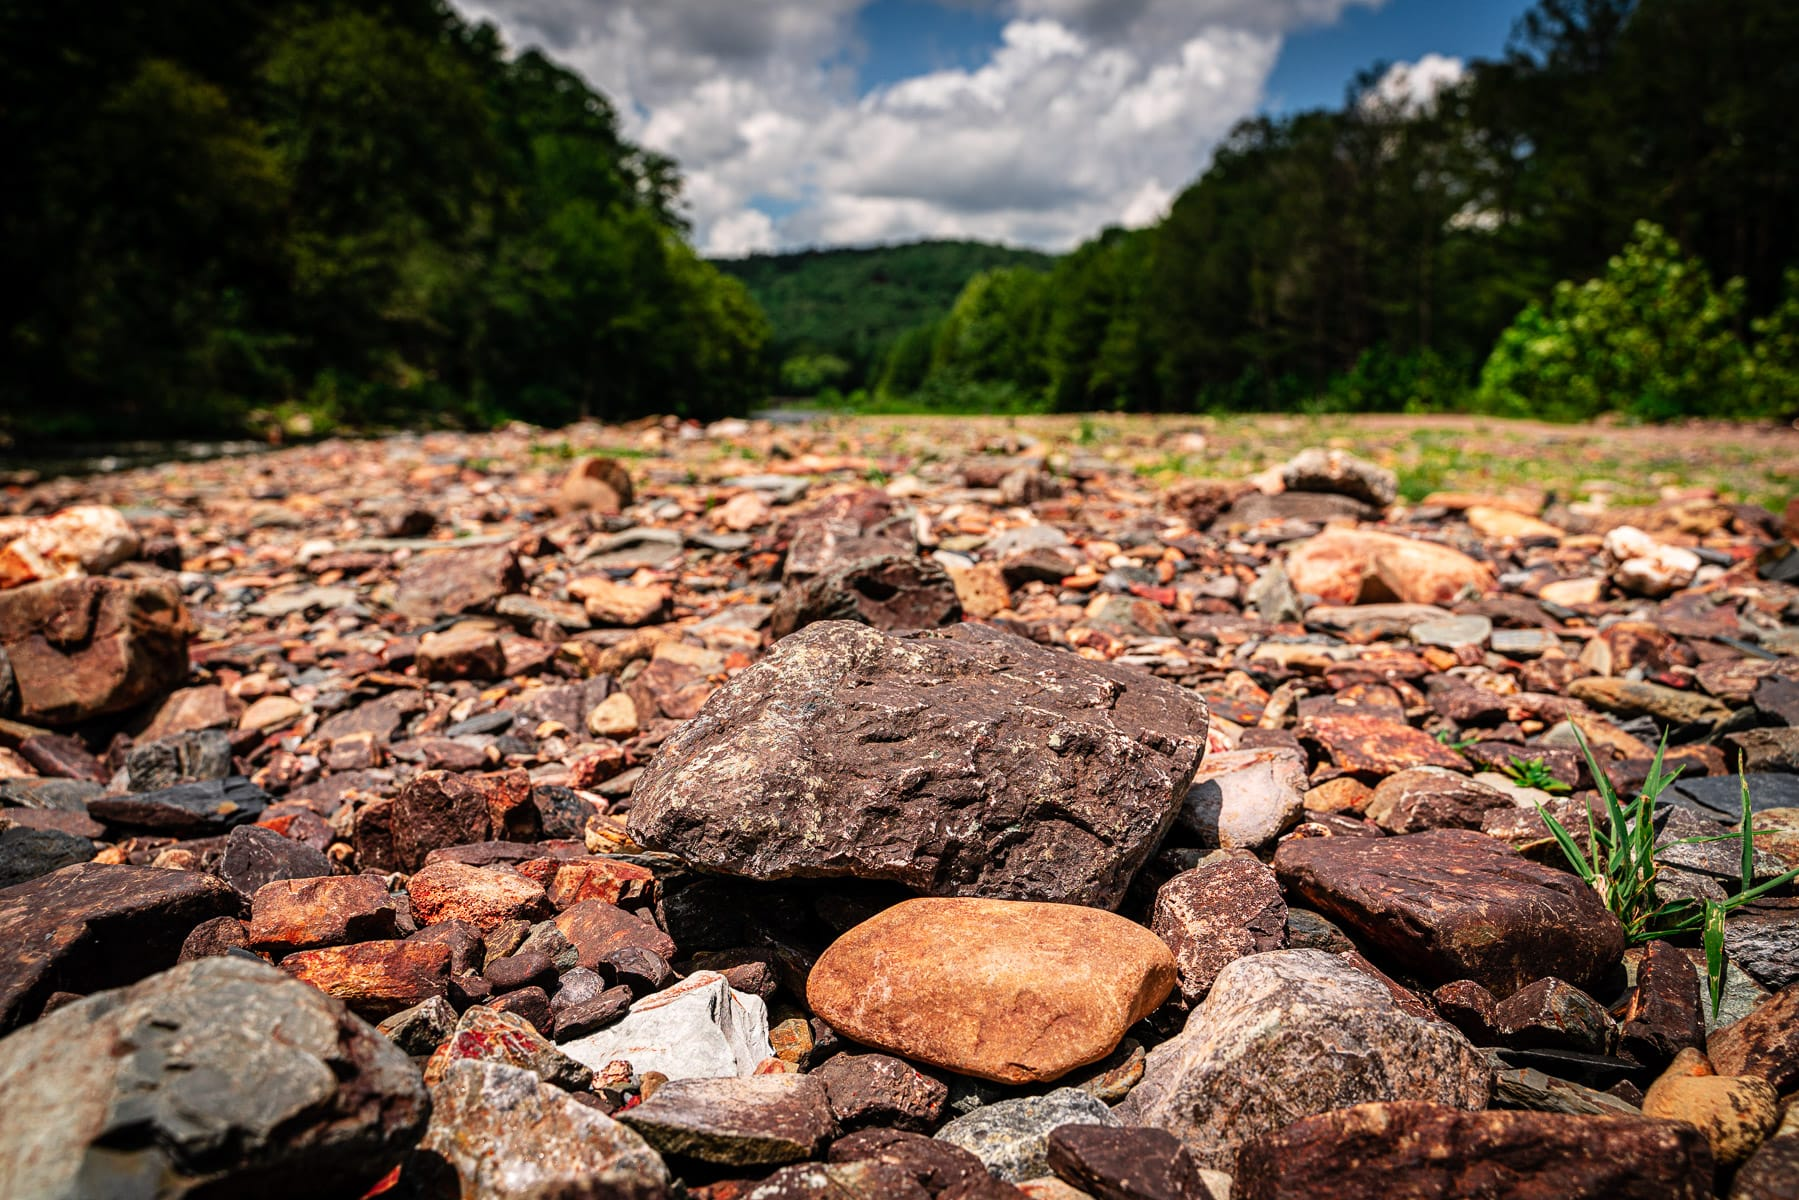 The rocky riverbed of the Mountain Fork river at Beavers Bend State Park, Oklahoma.